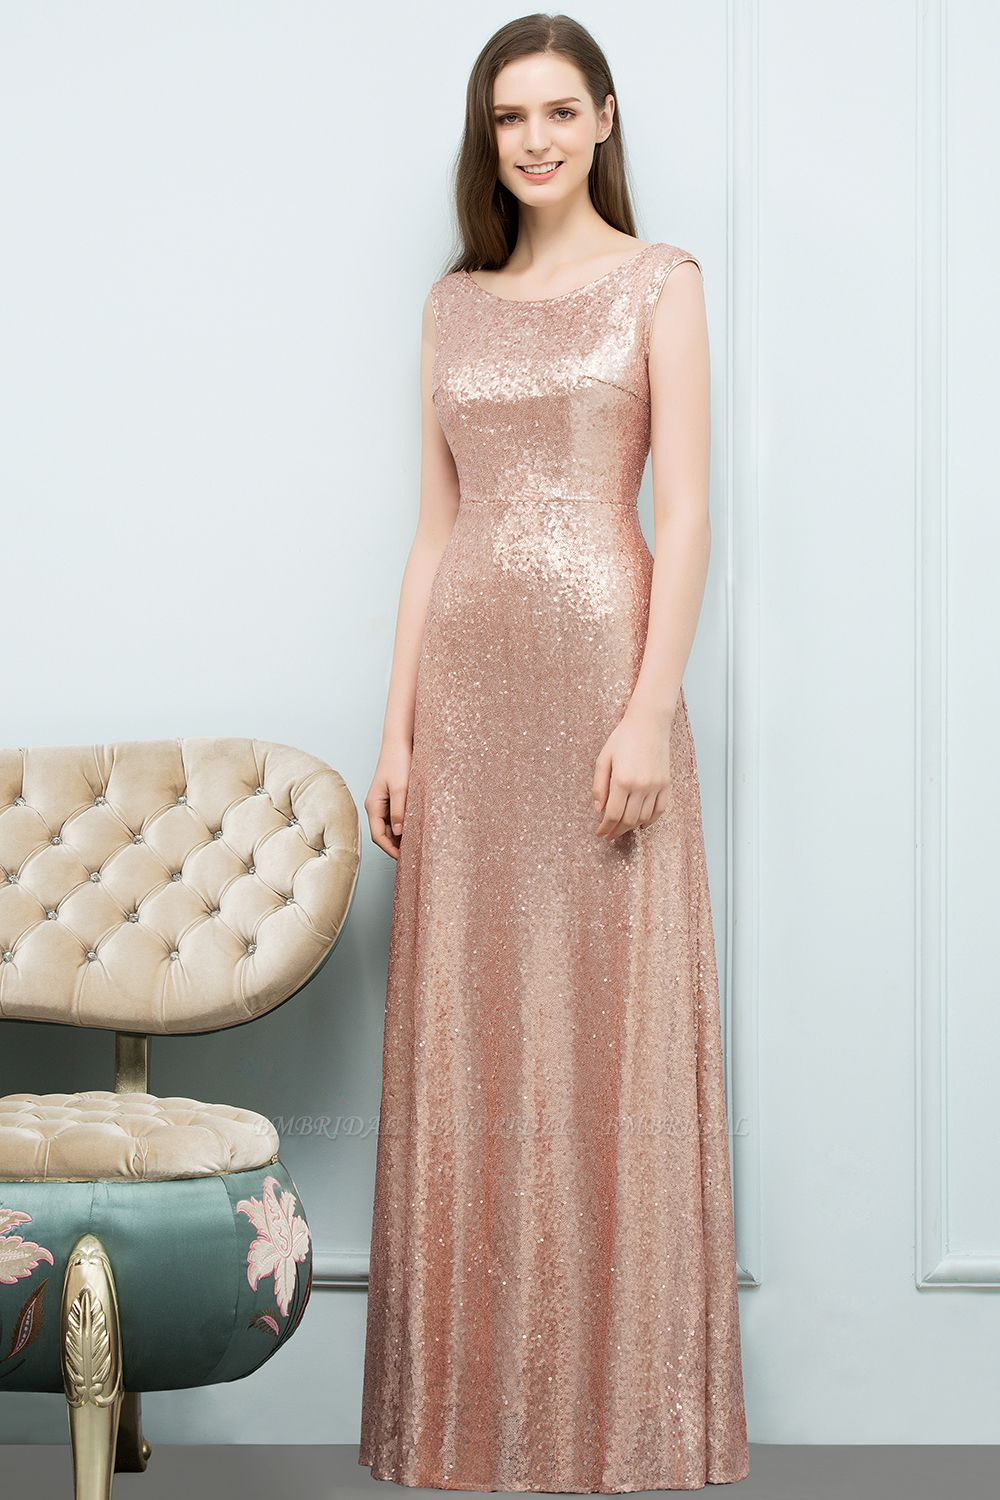 BMbridal Shiny Sequined Scoop Sleeveless Champagne Bridesmaid Dress Online